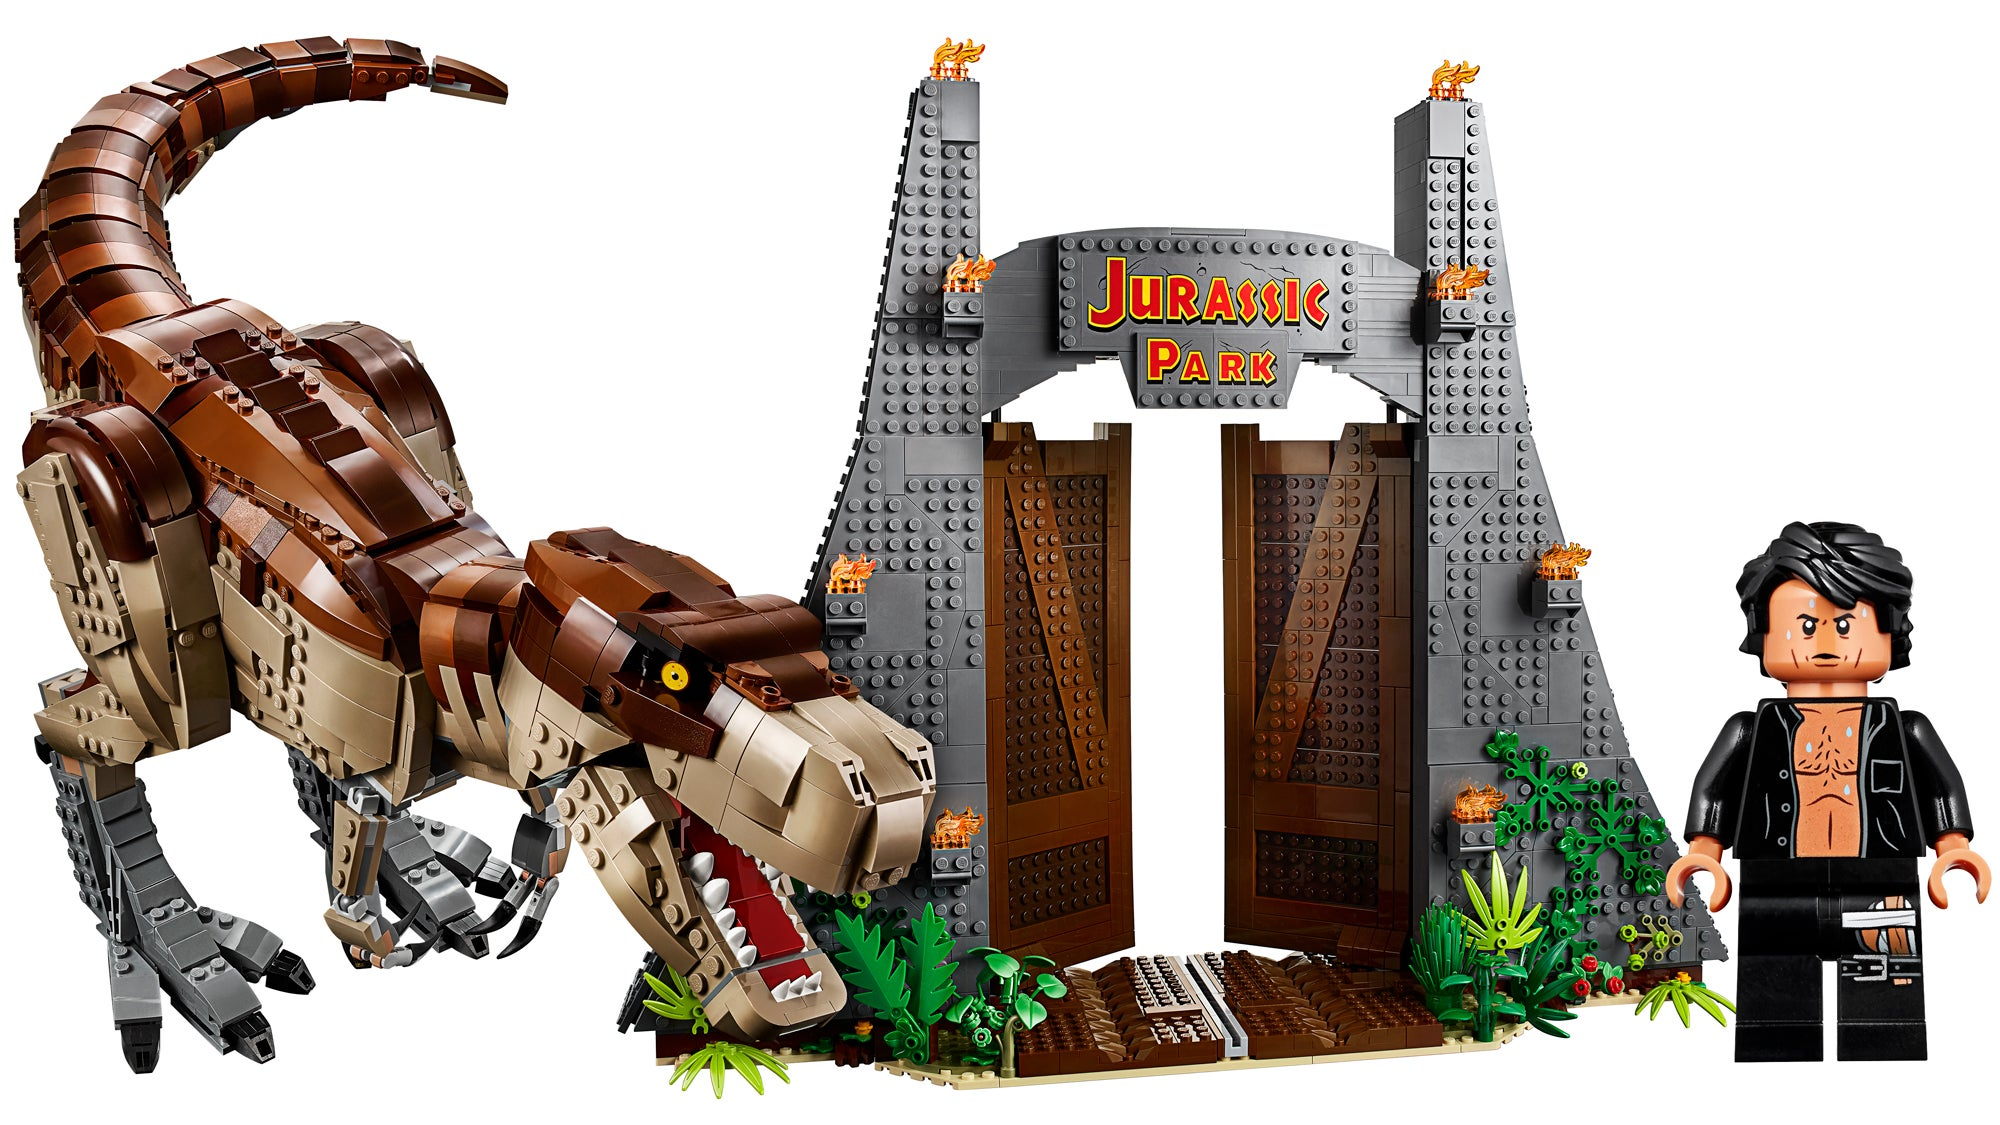 A Bare Chested Jeff Goldblum Is The Only Reason You Need To Grab This Epic Lego Jurassic Park Set